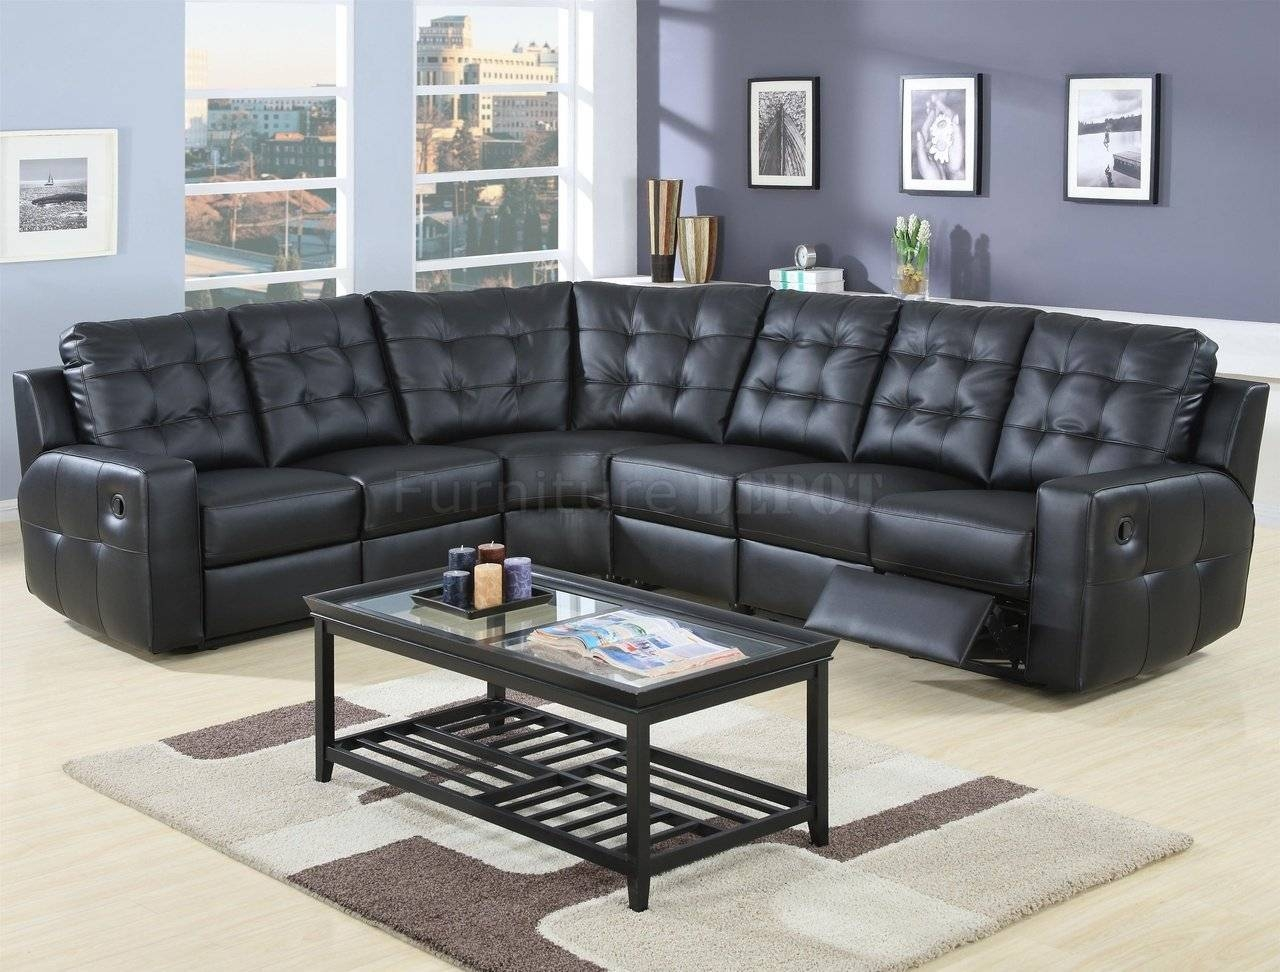 Furniture: Incredible Style Sectional Reclining Sofas For Your For Curved Recliner Sofa (Photo 29 of 30)